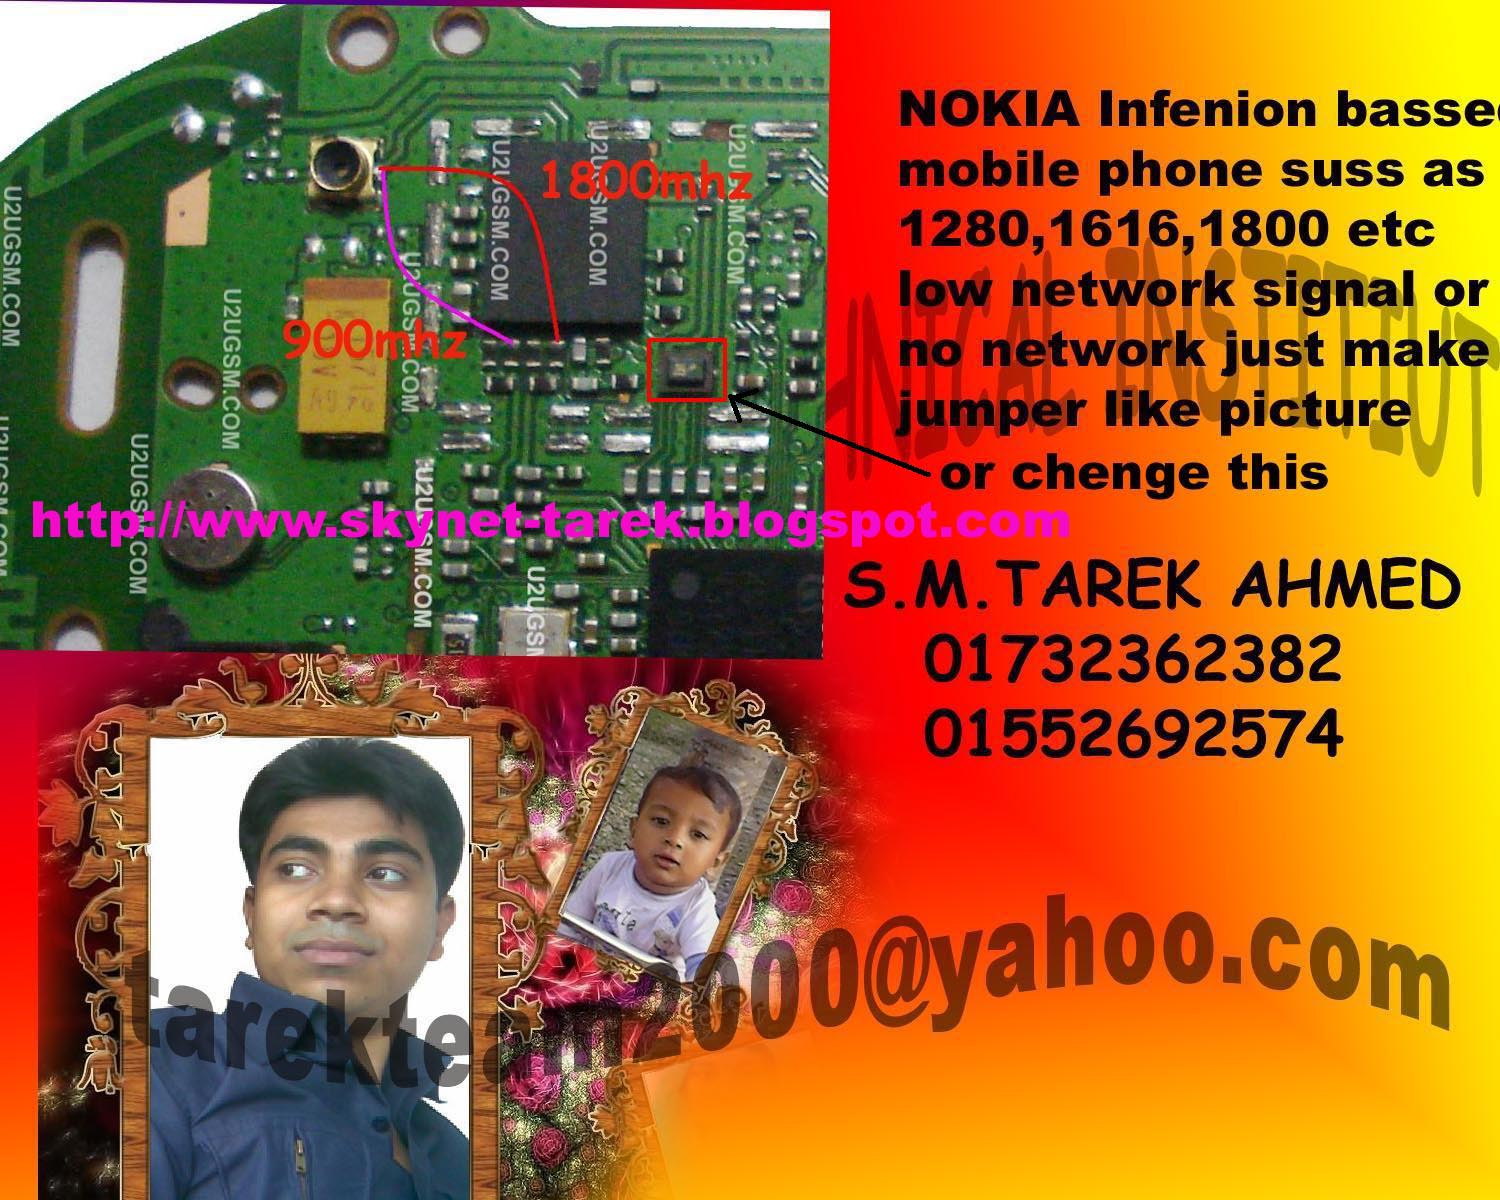 Nokia 1280 1616 1800 c1-00 network jumper